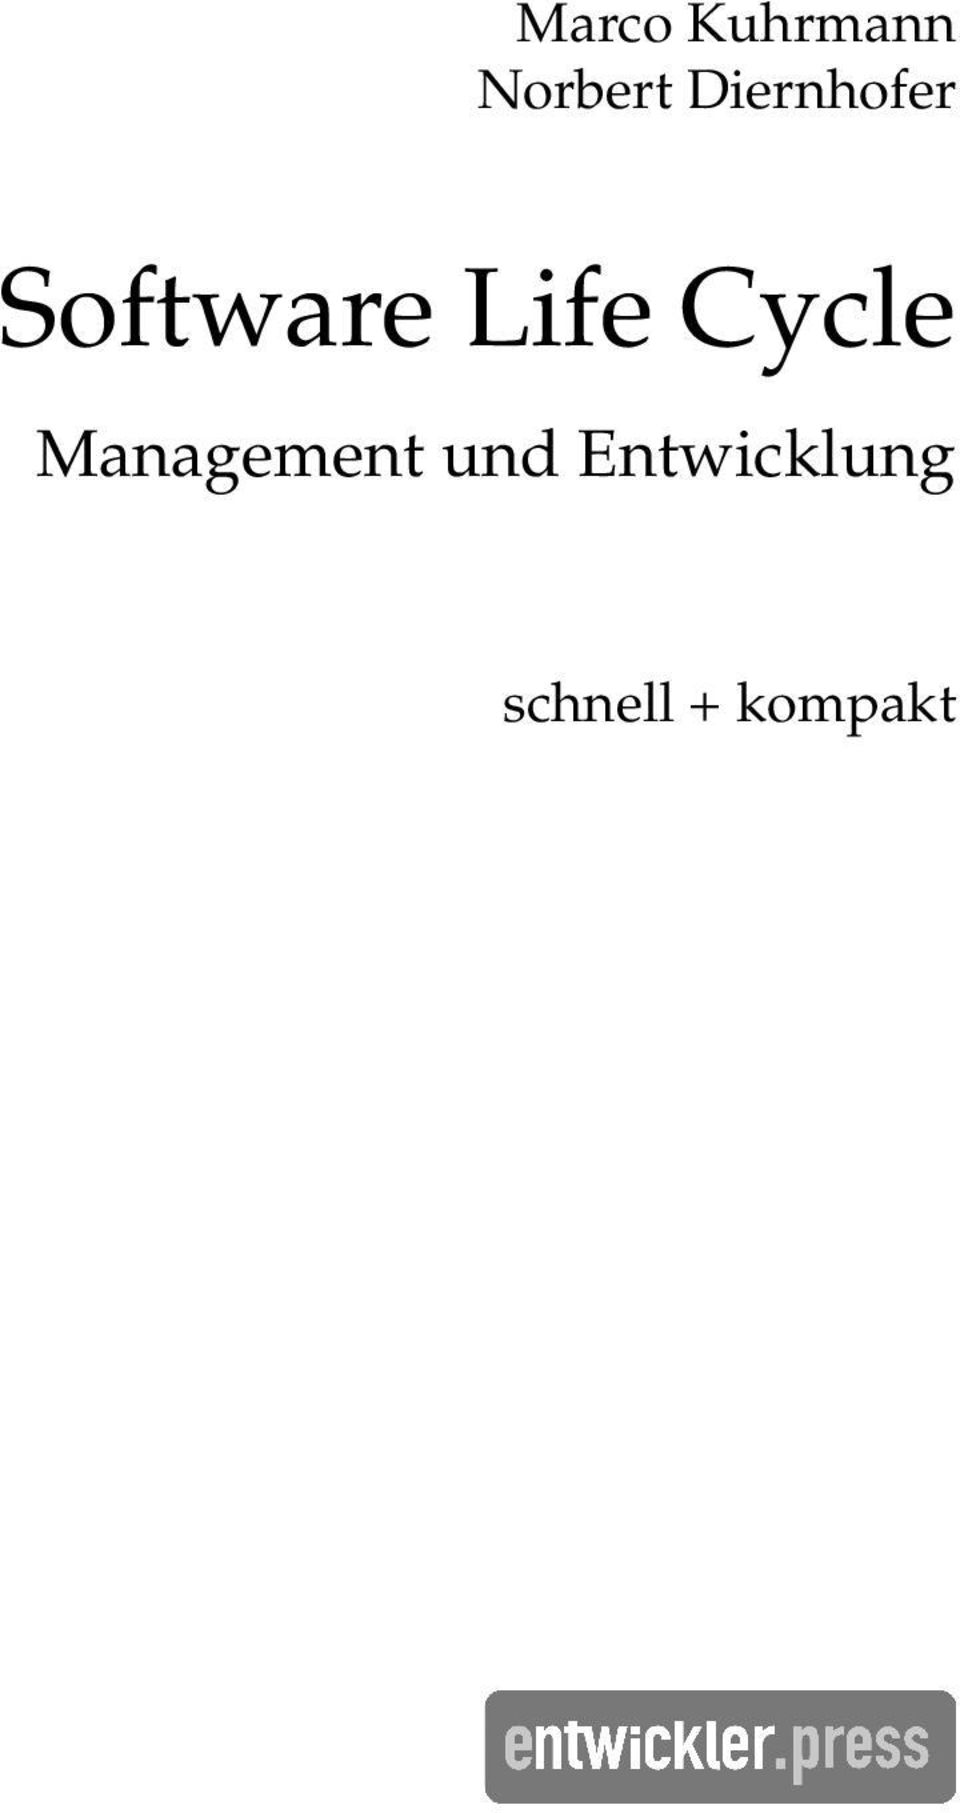 Cycle Management und